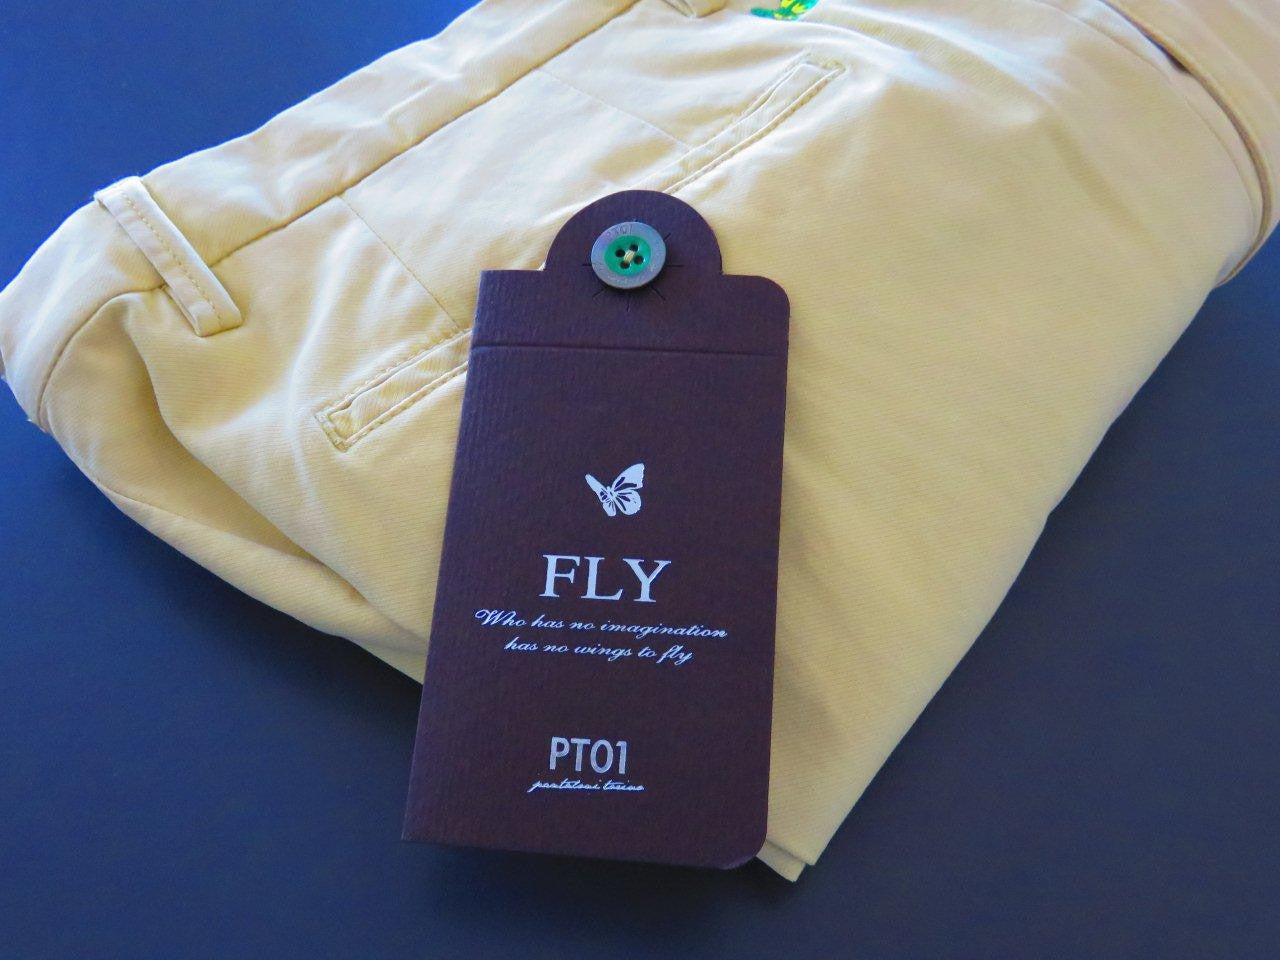 PT01 Pantaloni Torino - Model Fly (various colours)